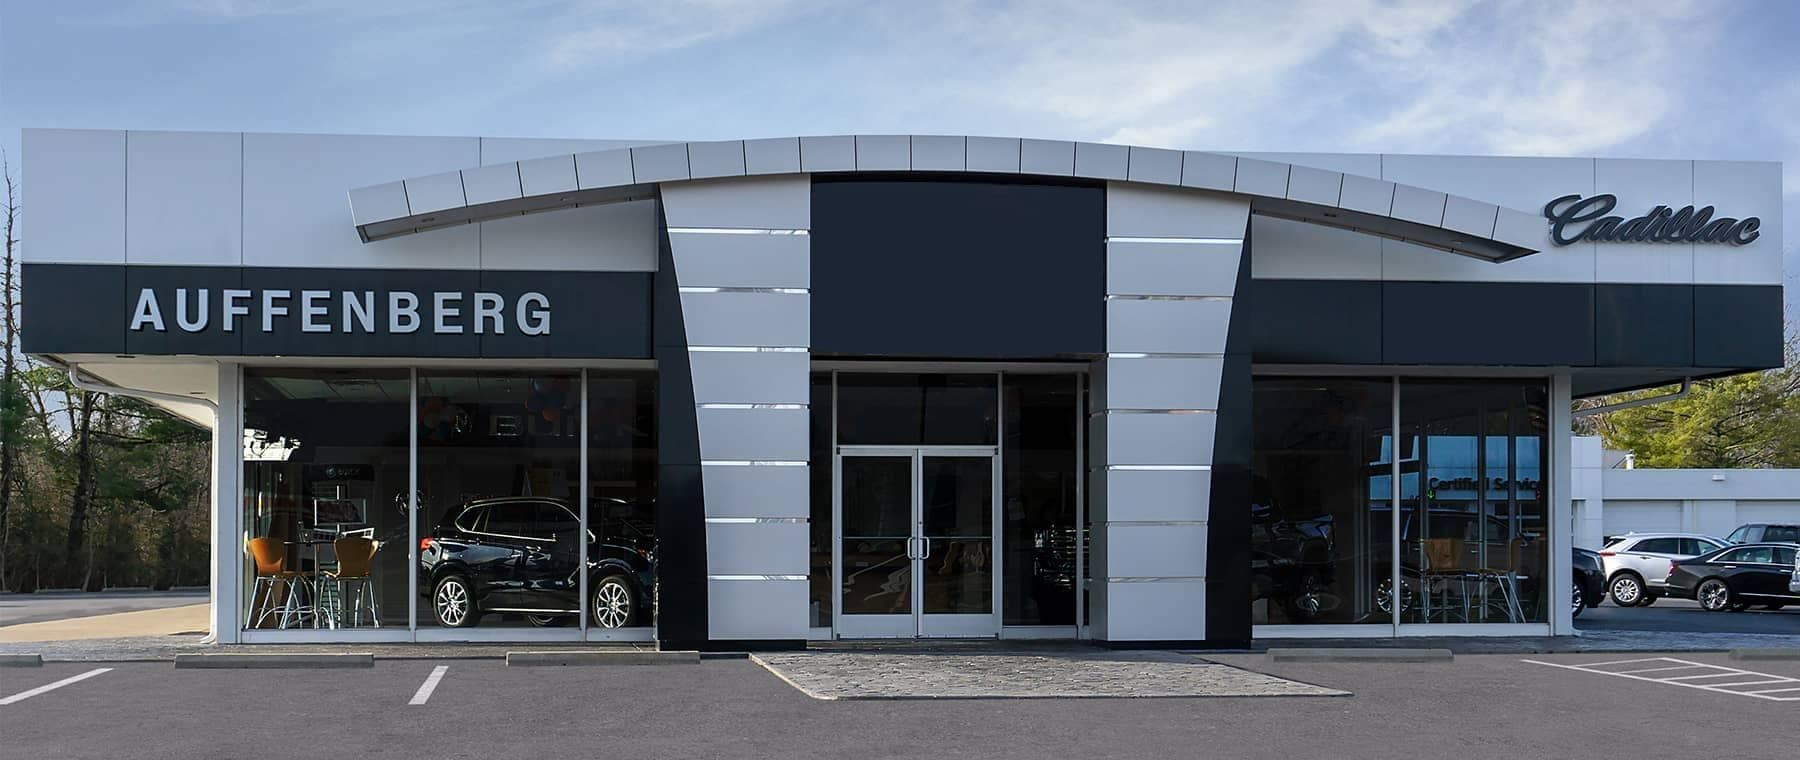 An exterior shot of a Cadillac dealership during the day